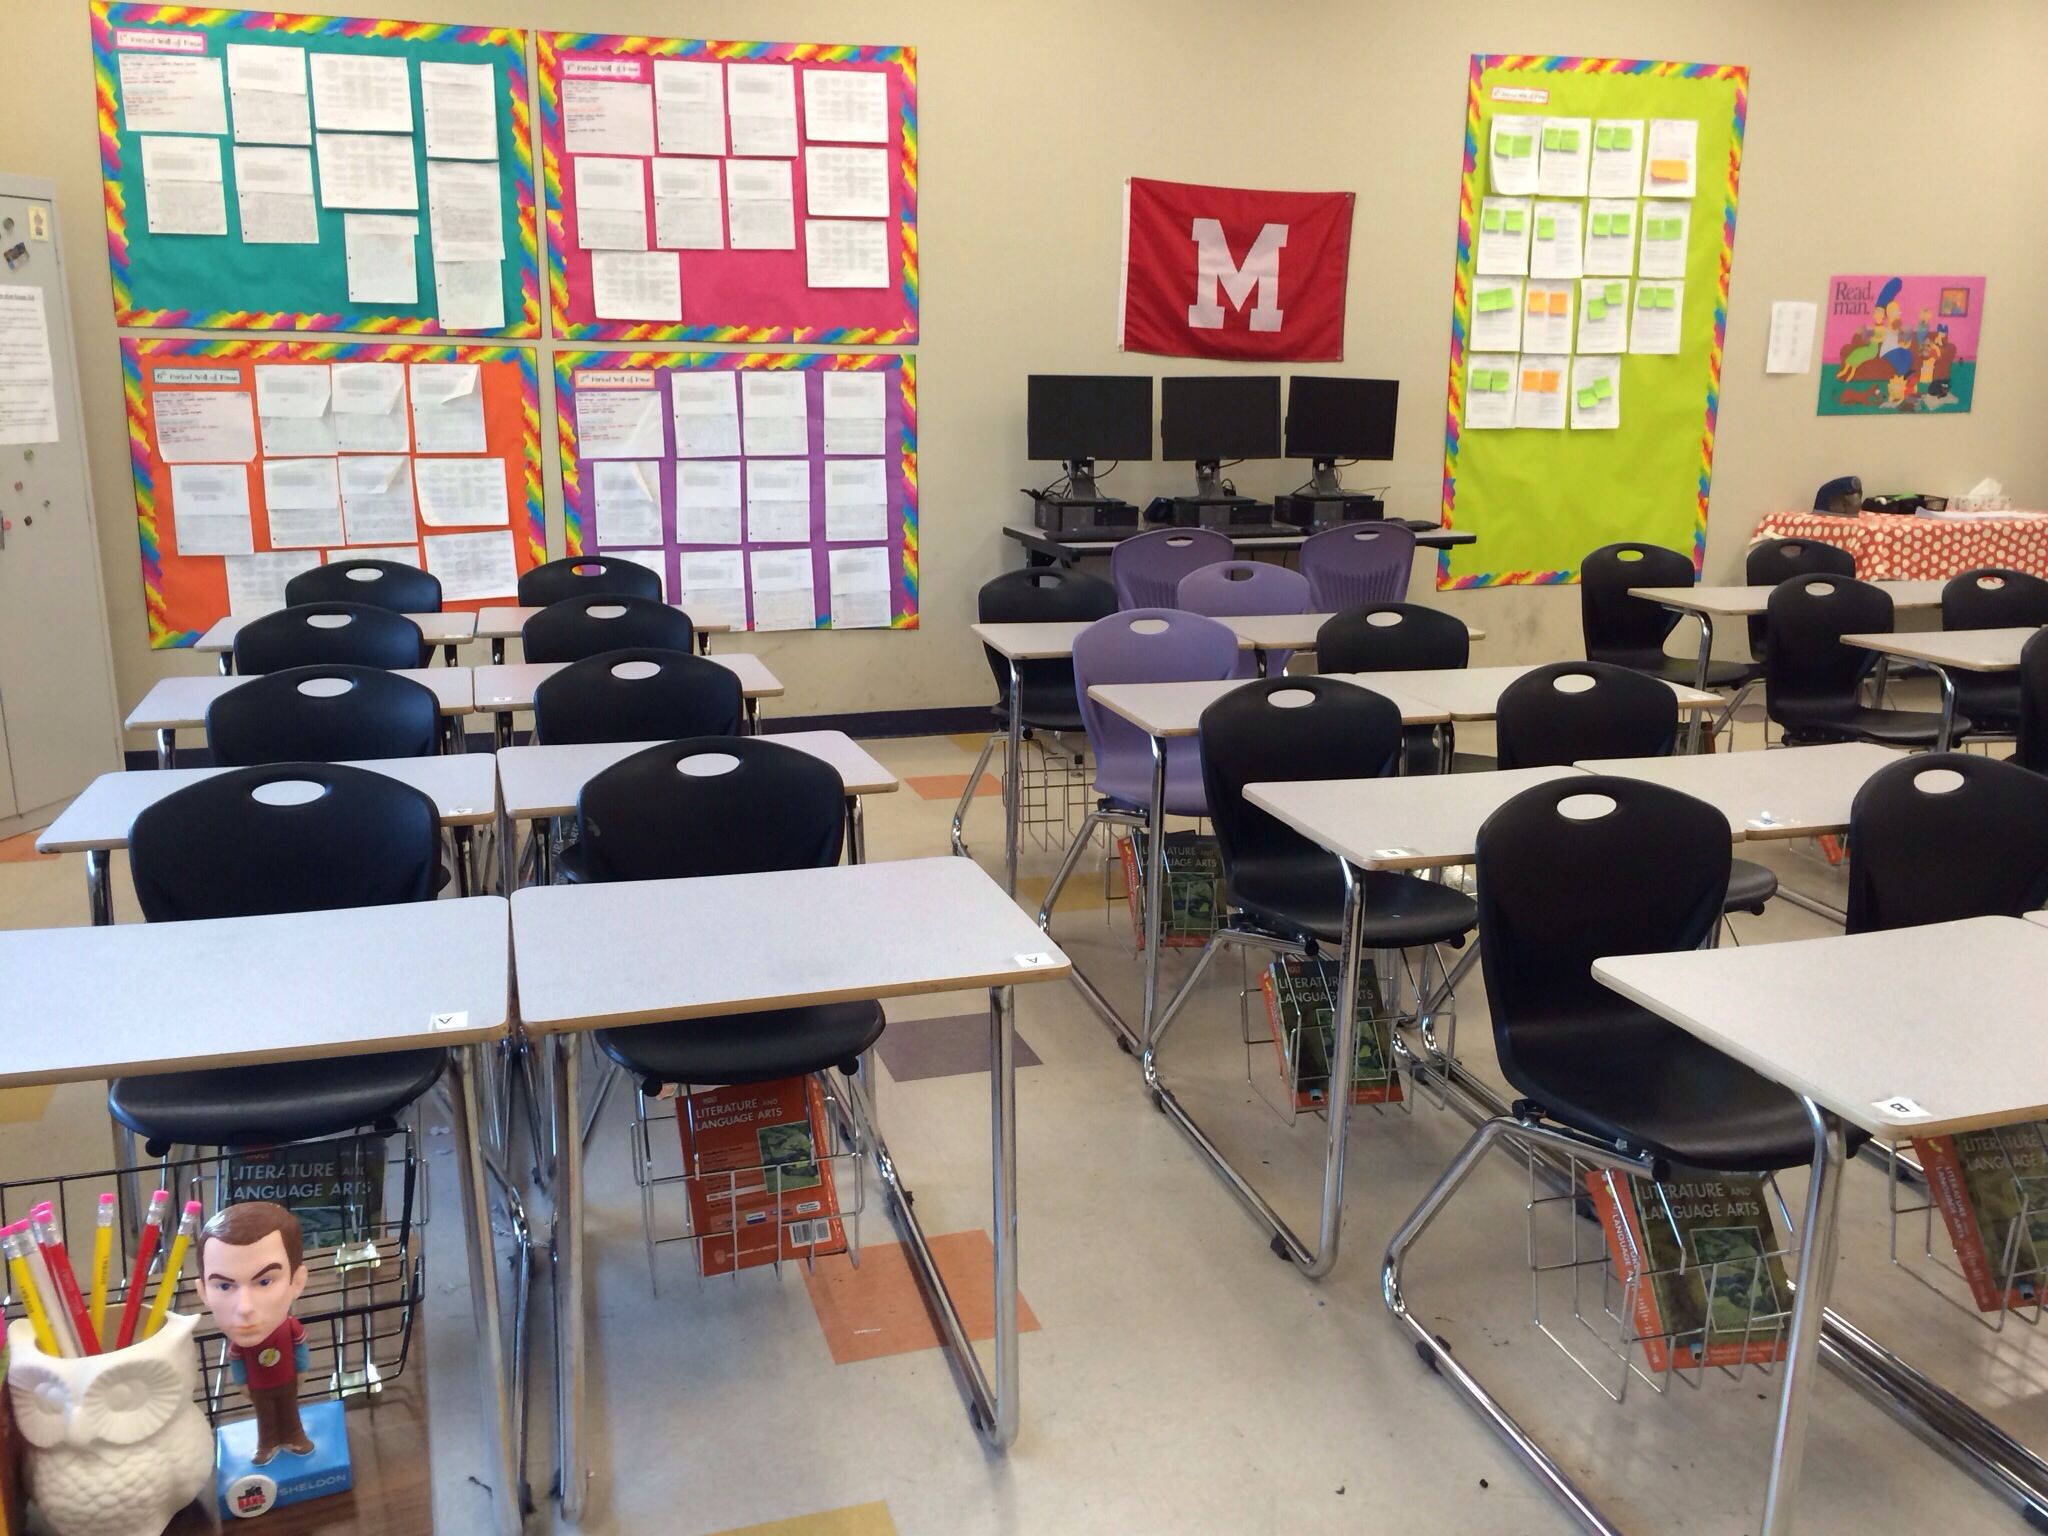 Classroom Organization Ideas High School ~ High school classroom organization arranging the desks